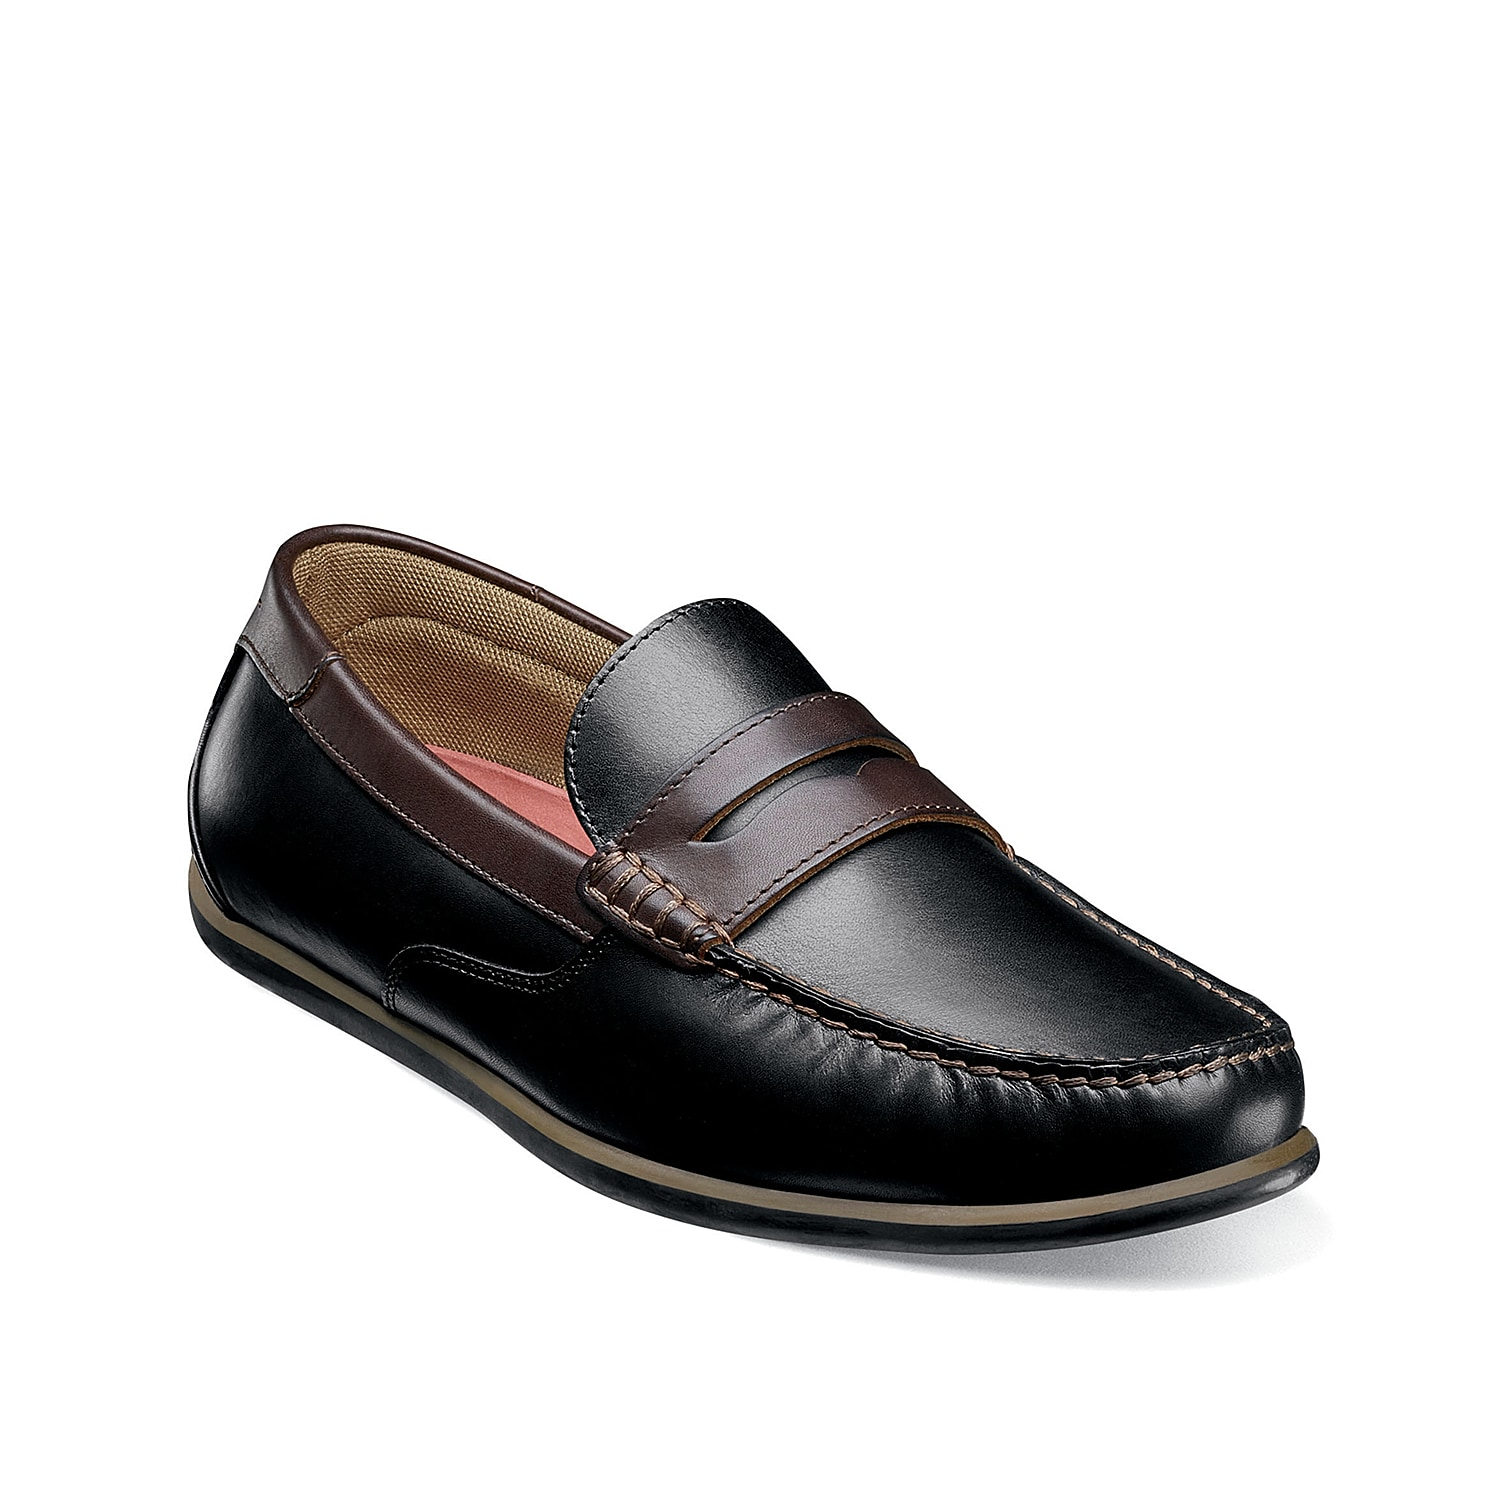 Impress all you pass by in the 13350 Sportster penny loafer from Florsheim. These slip-ons feature a classic moc toe design and a rubber driver sole for a prestigious finish.